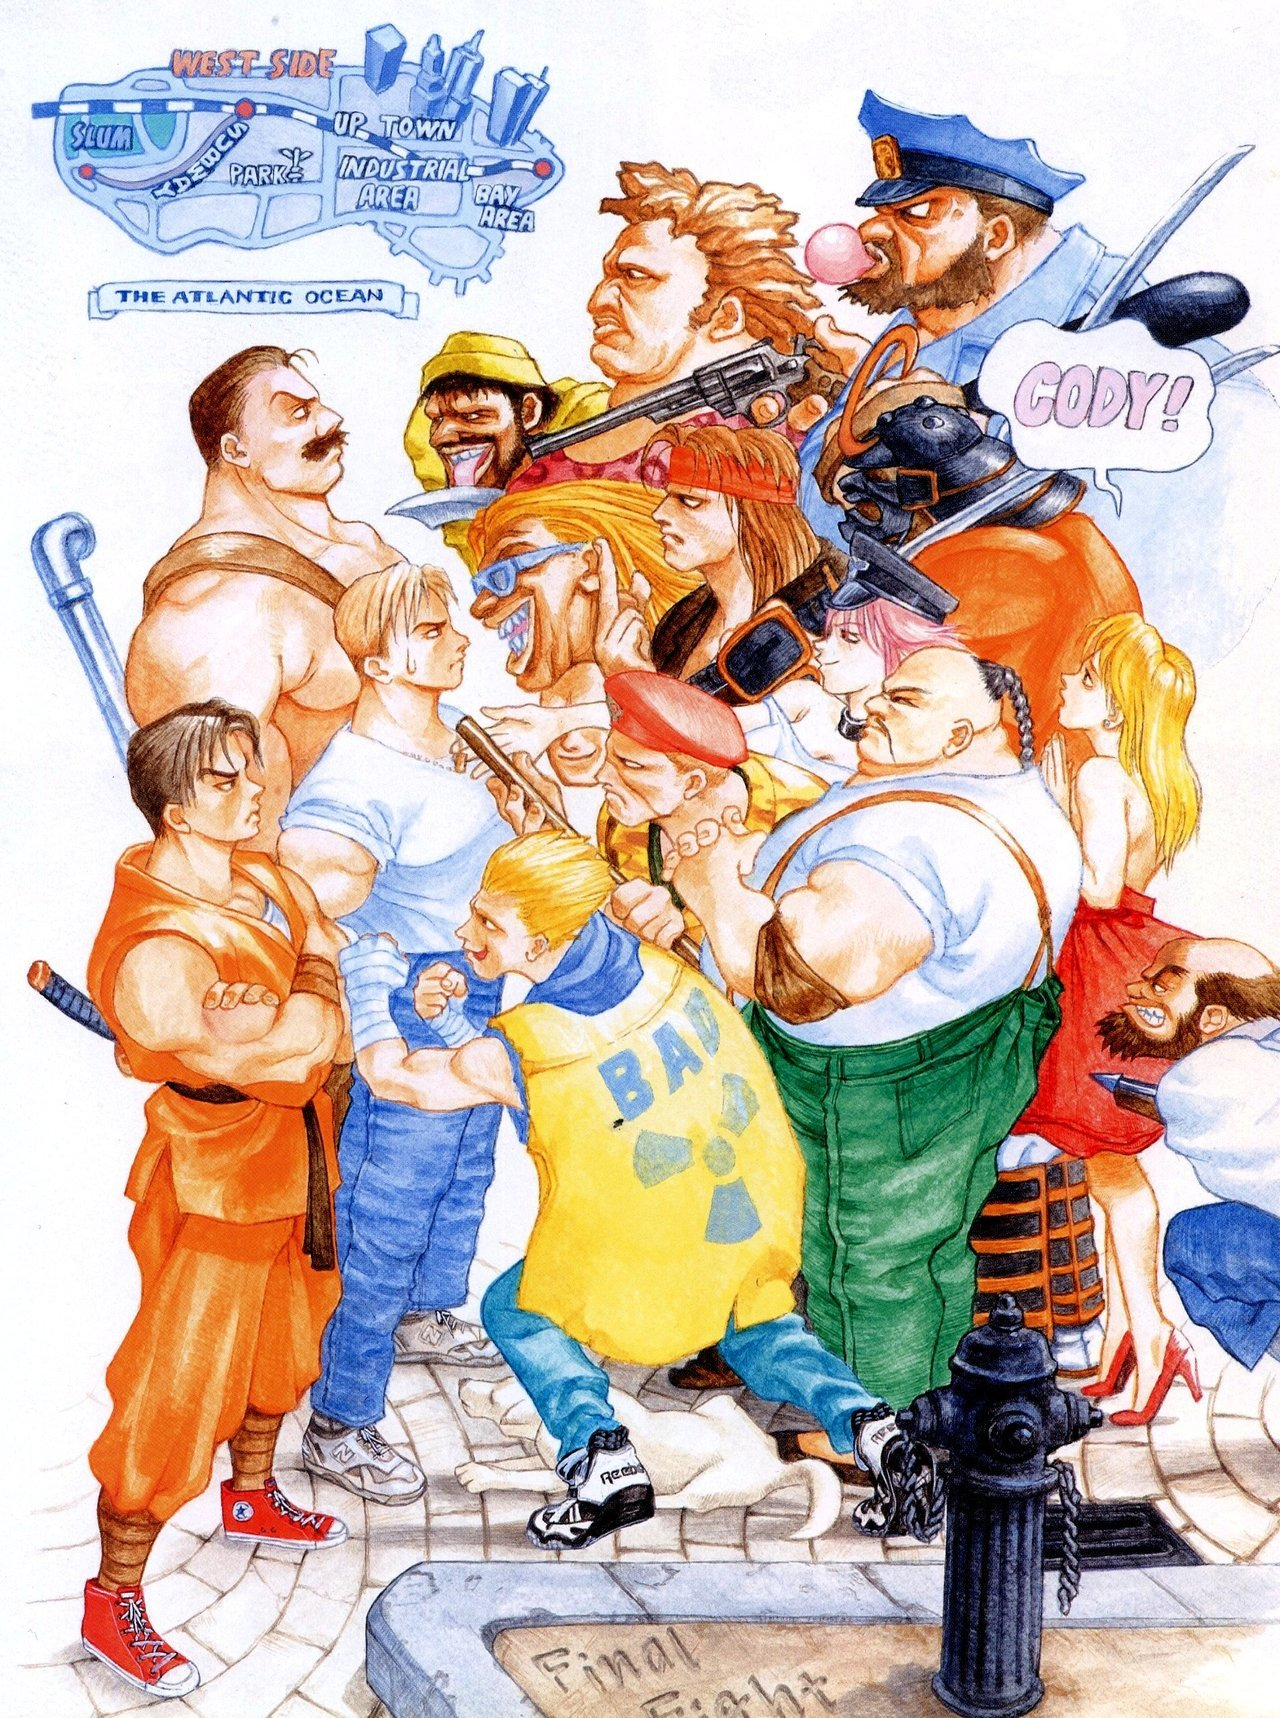 File:FinalFight-promo-art.jpg